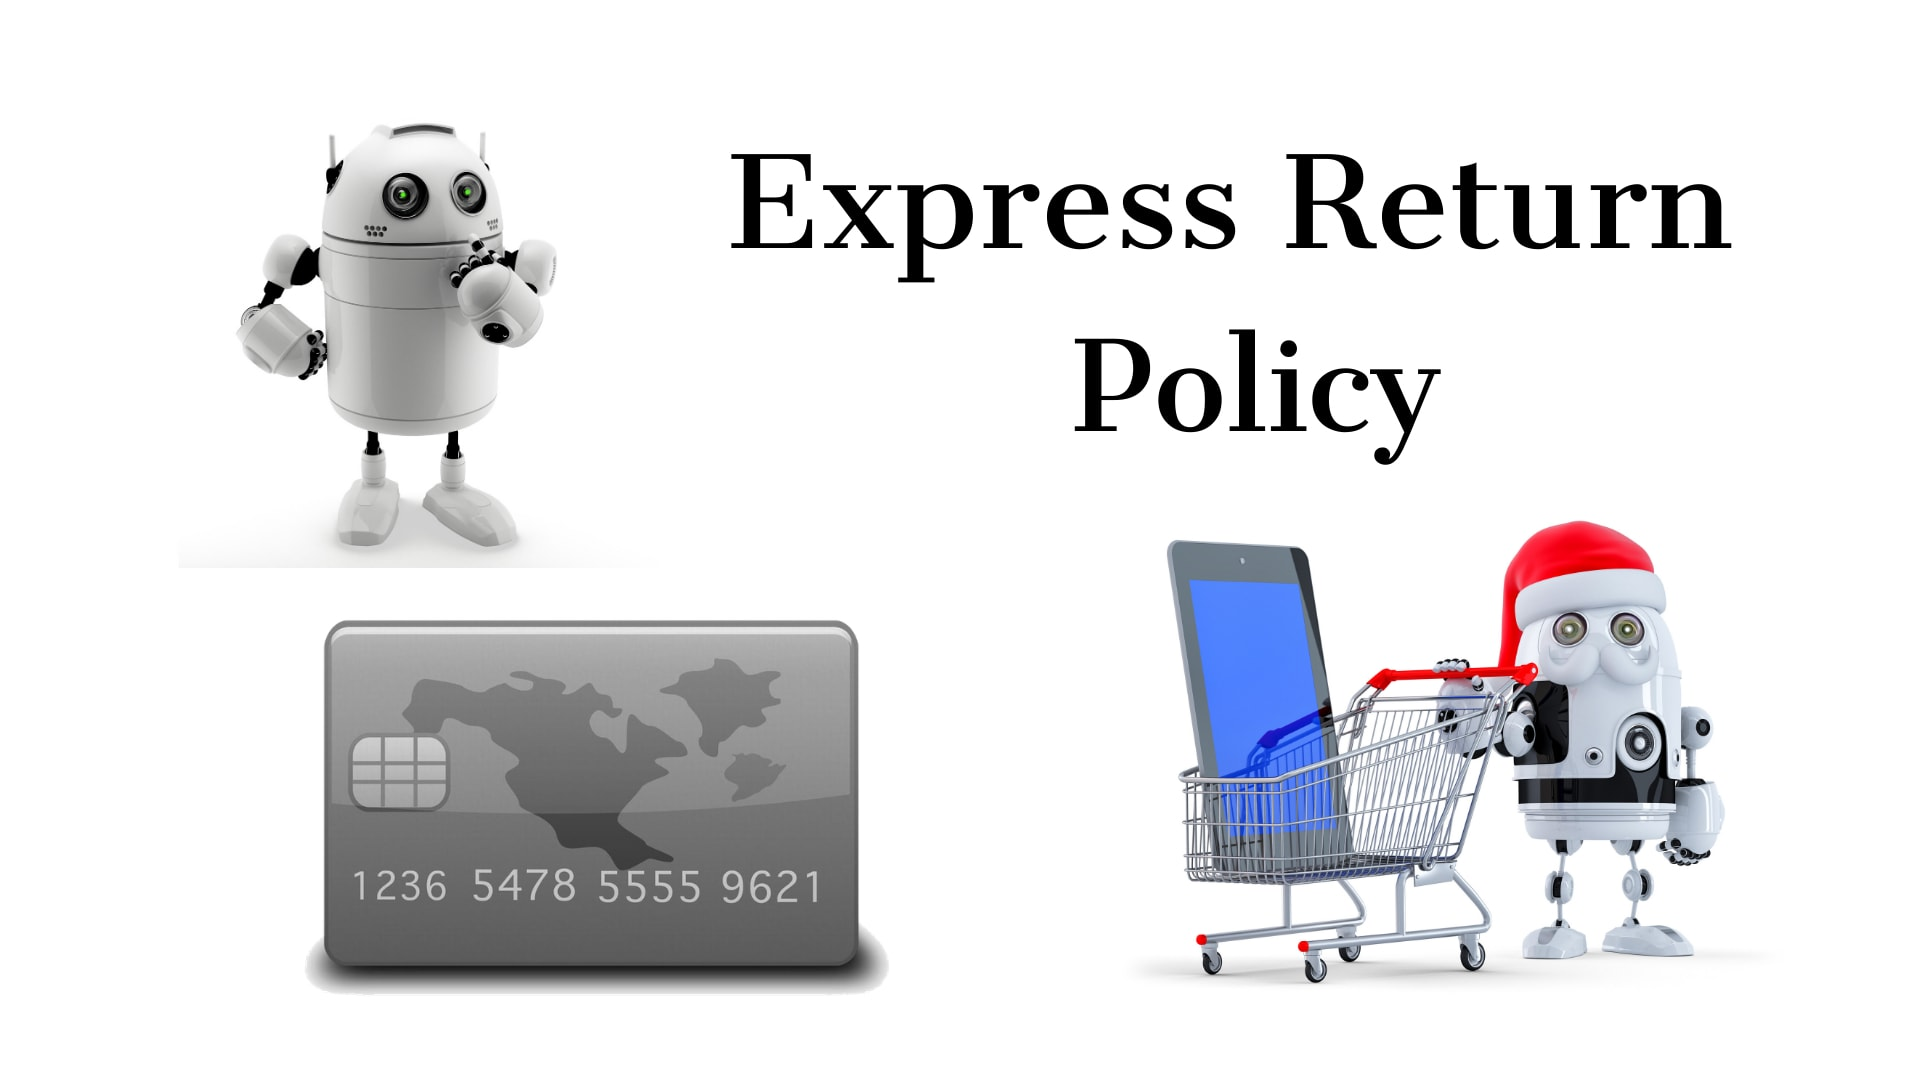 Express Return Policy - Top 7 Thinks About Express Return Policy